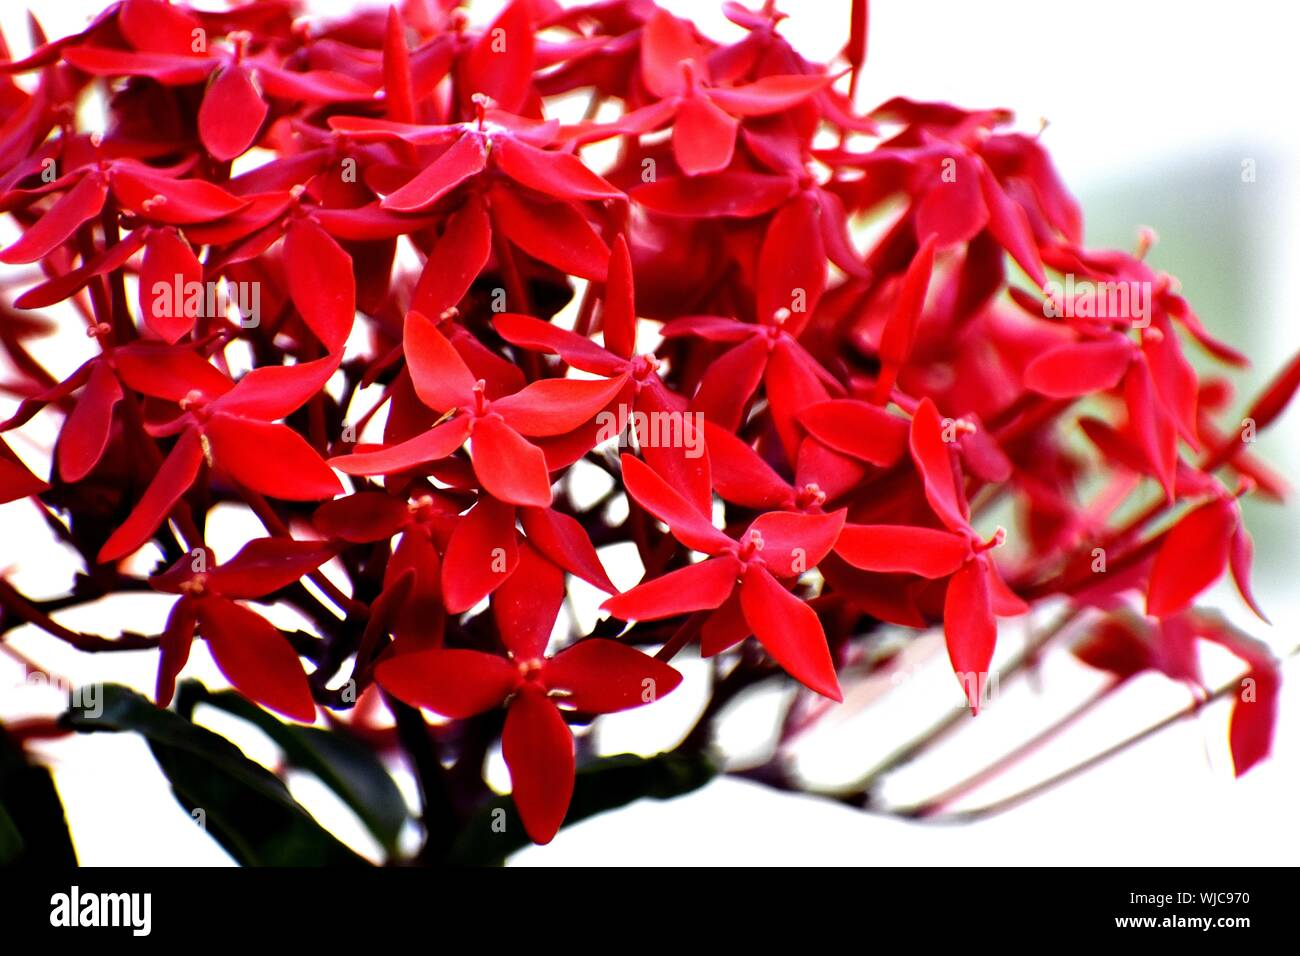 A Bunch of Fresh Red Flowers Stock Photo